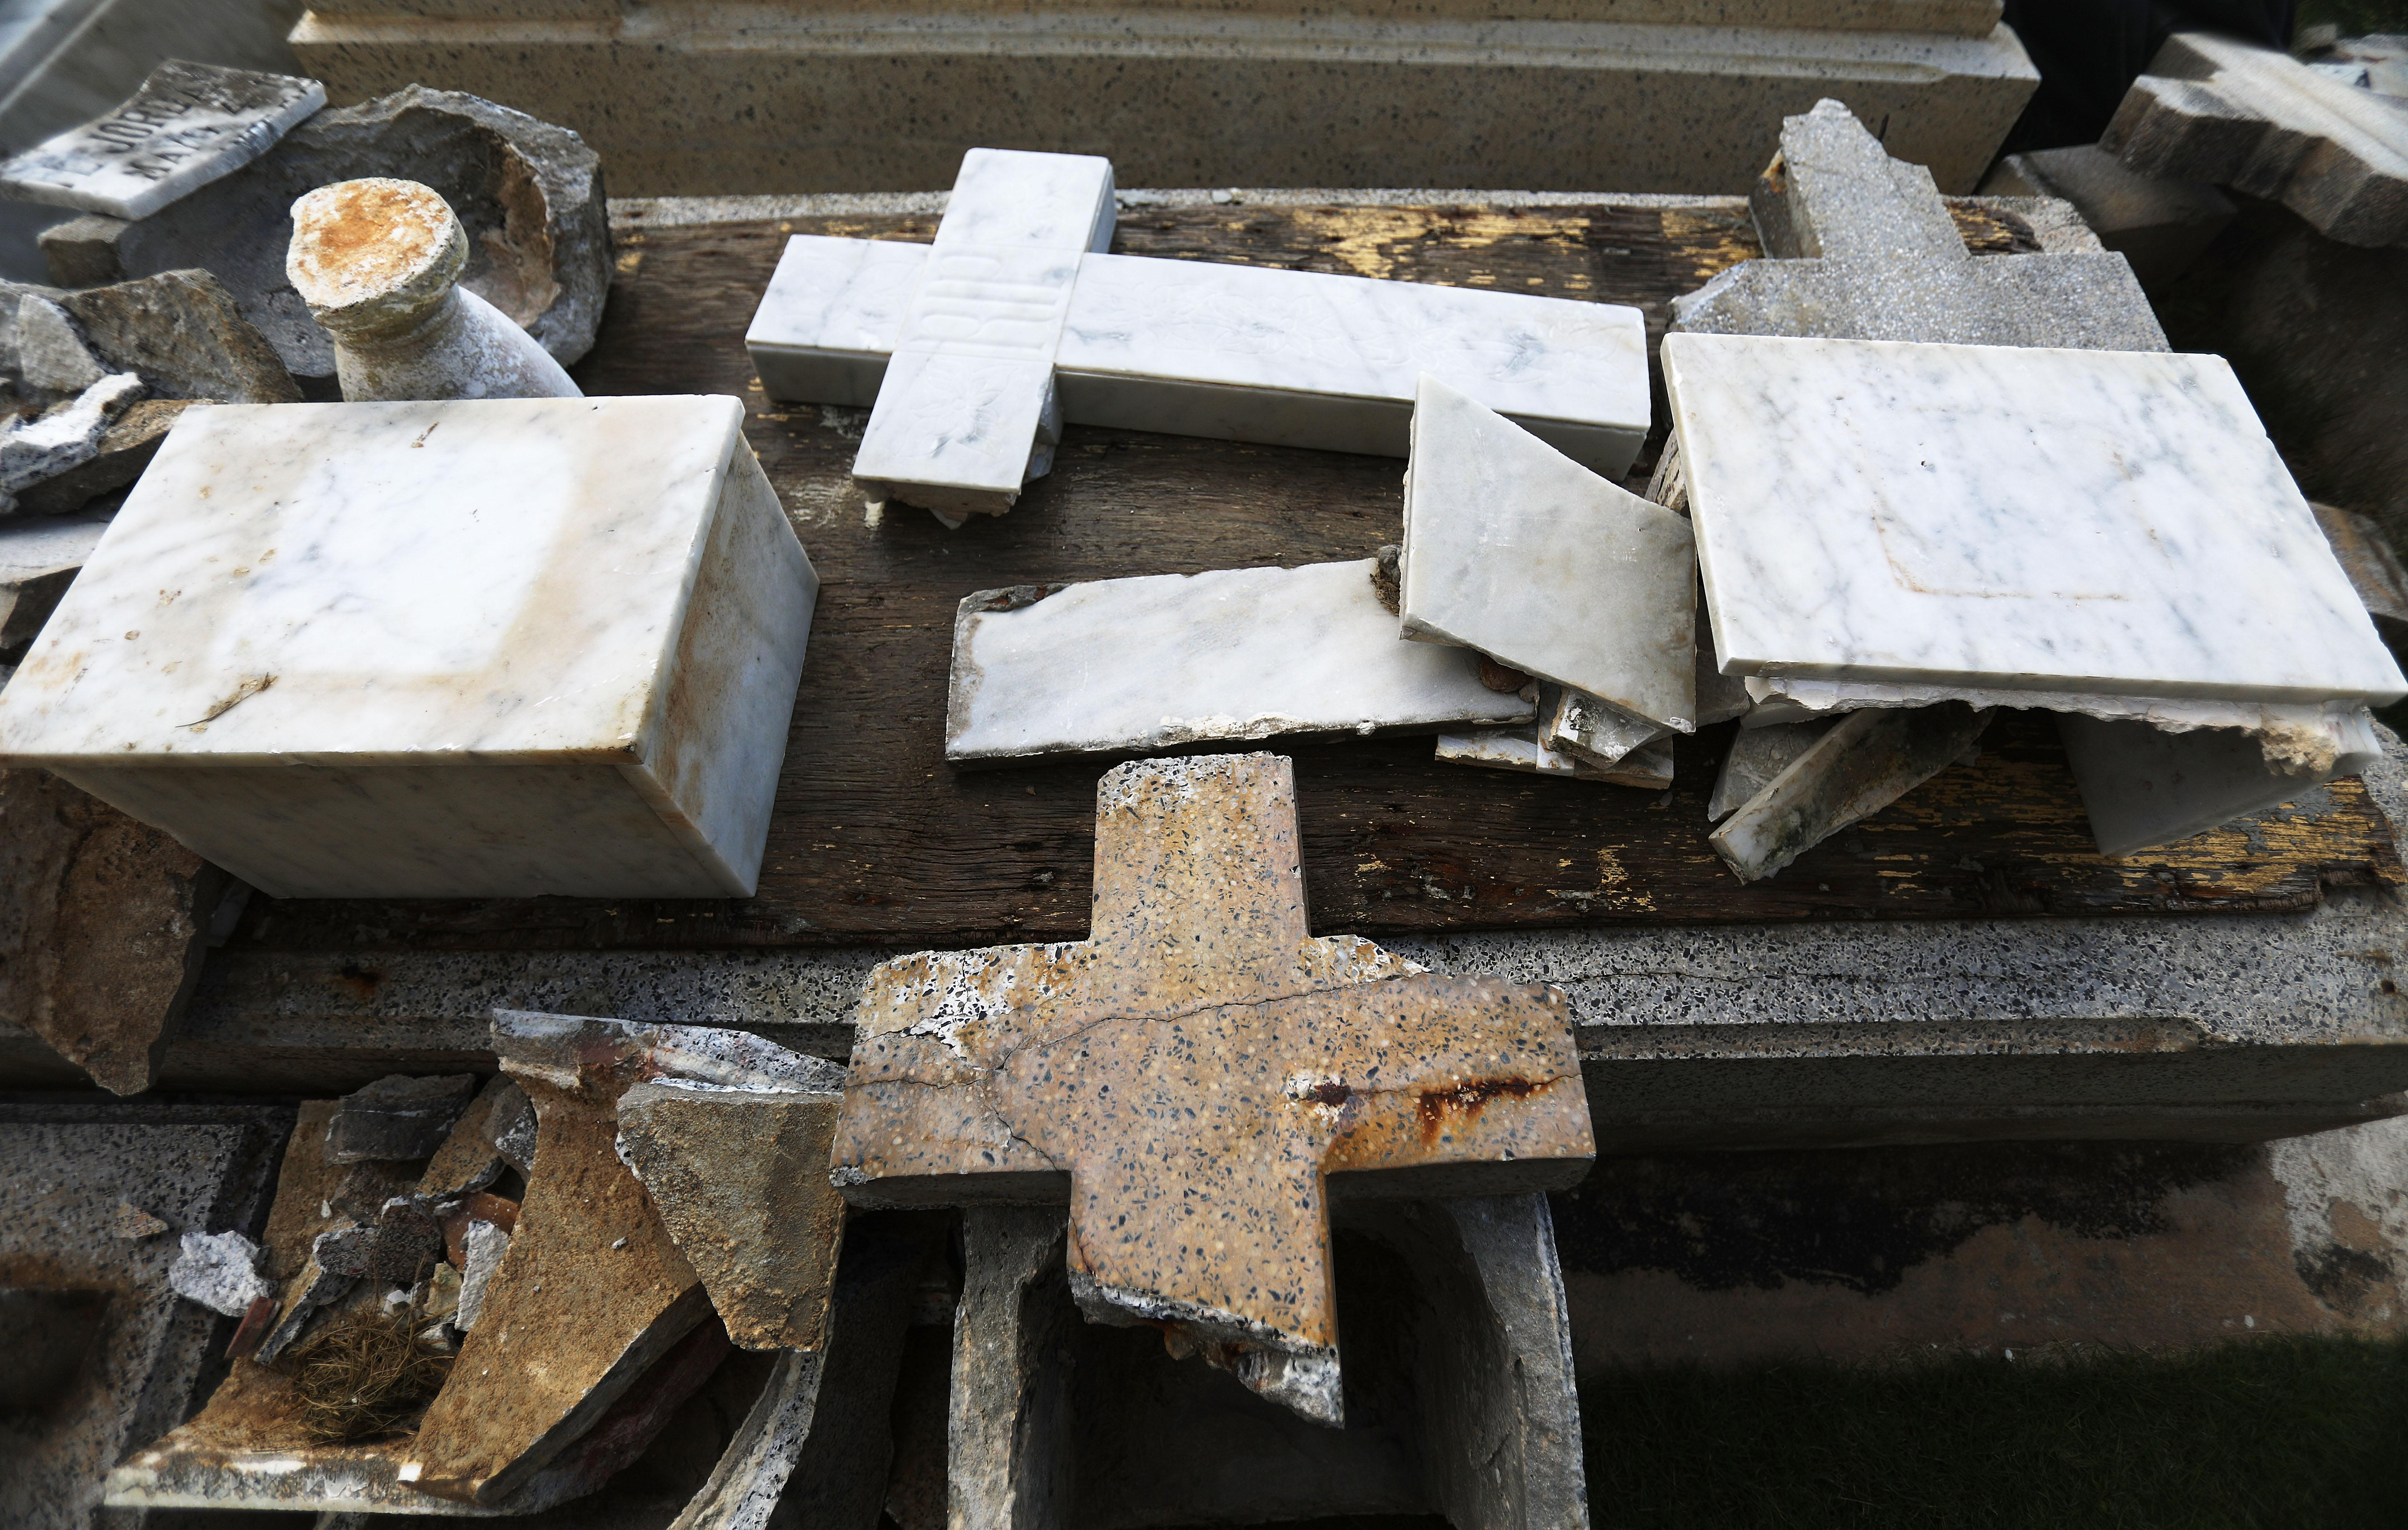 Toppled gravestones in a Puerto Rico cemetary